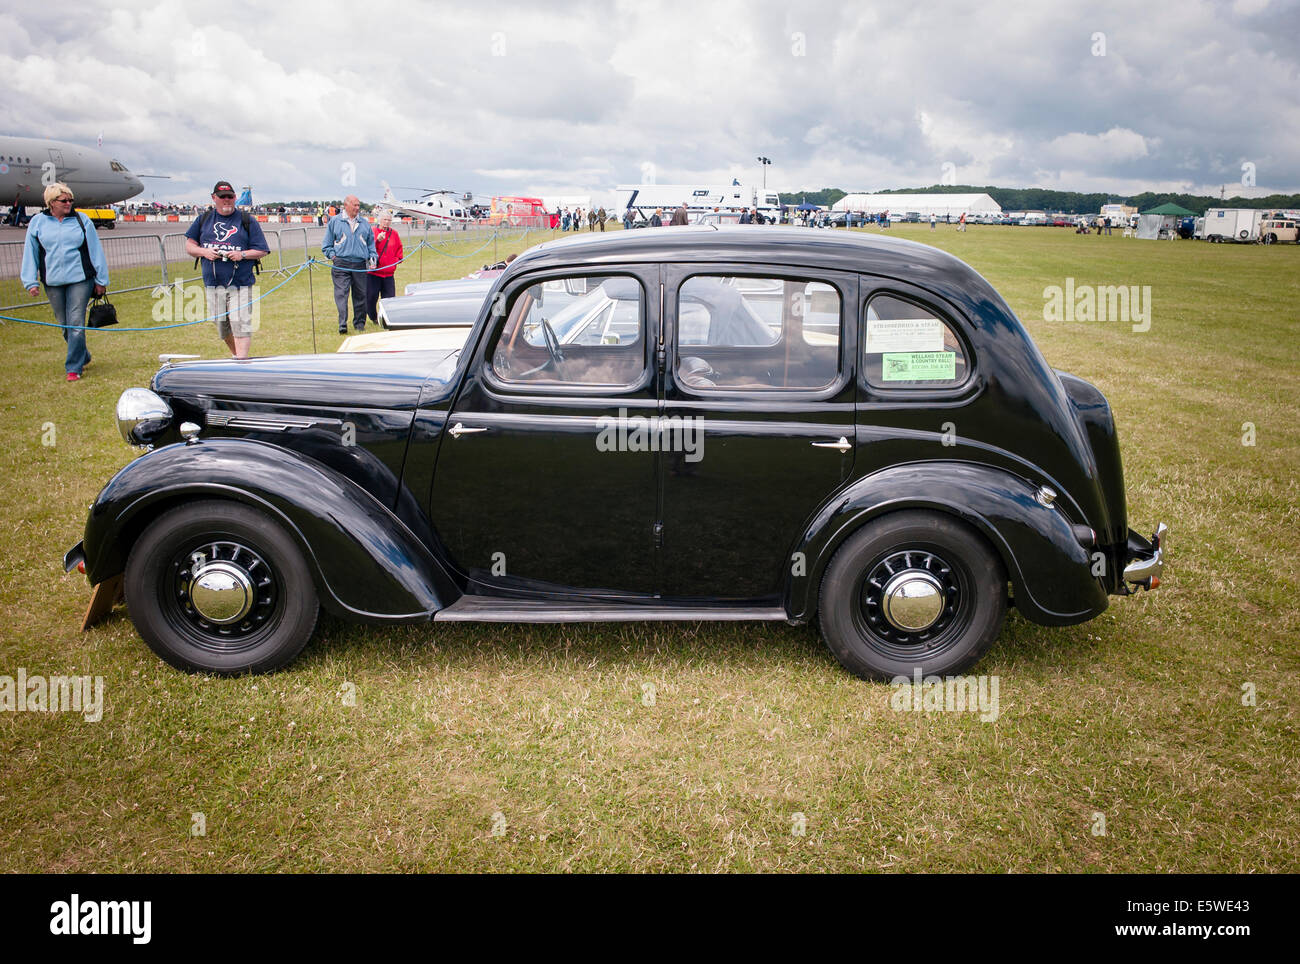 1940s Austin 10 Car An Outdoor Event In Ukkemble Gloucestershire